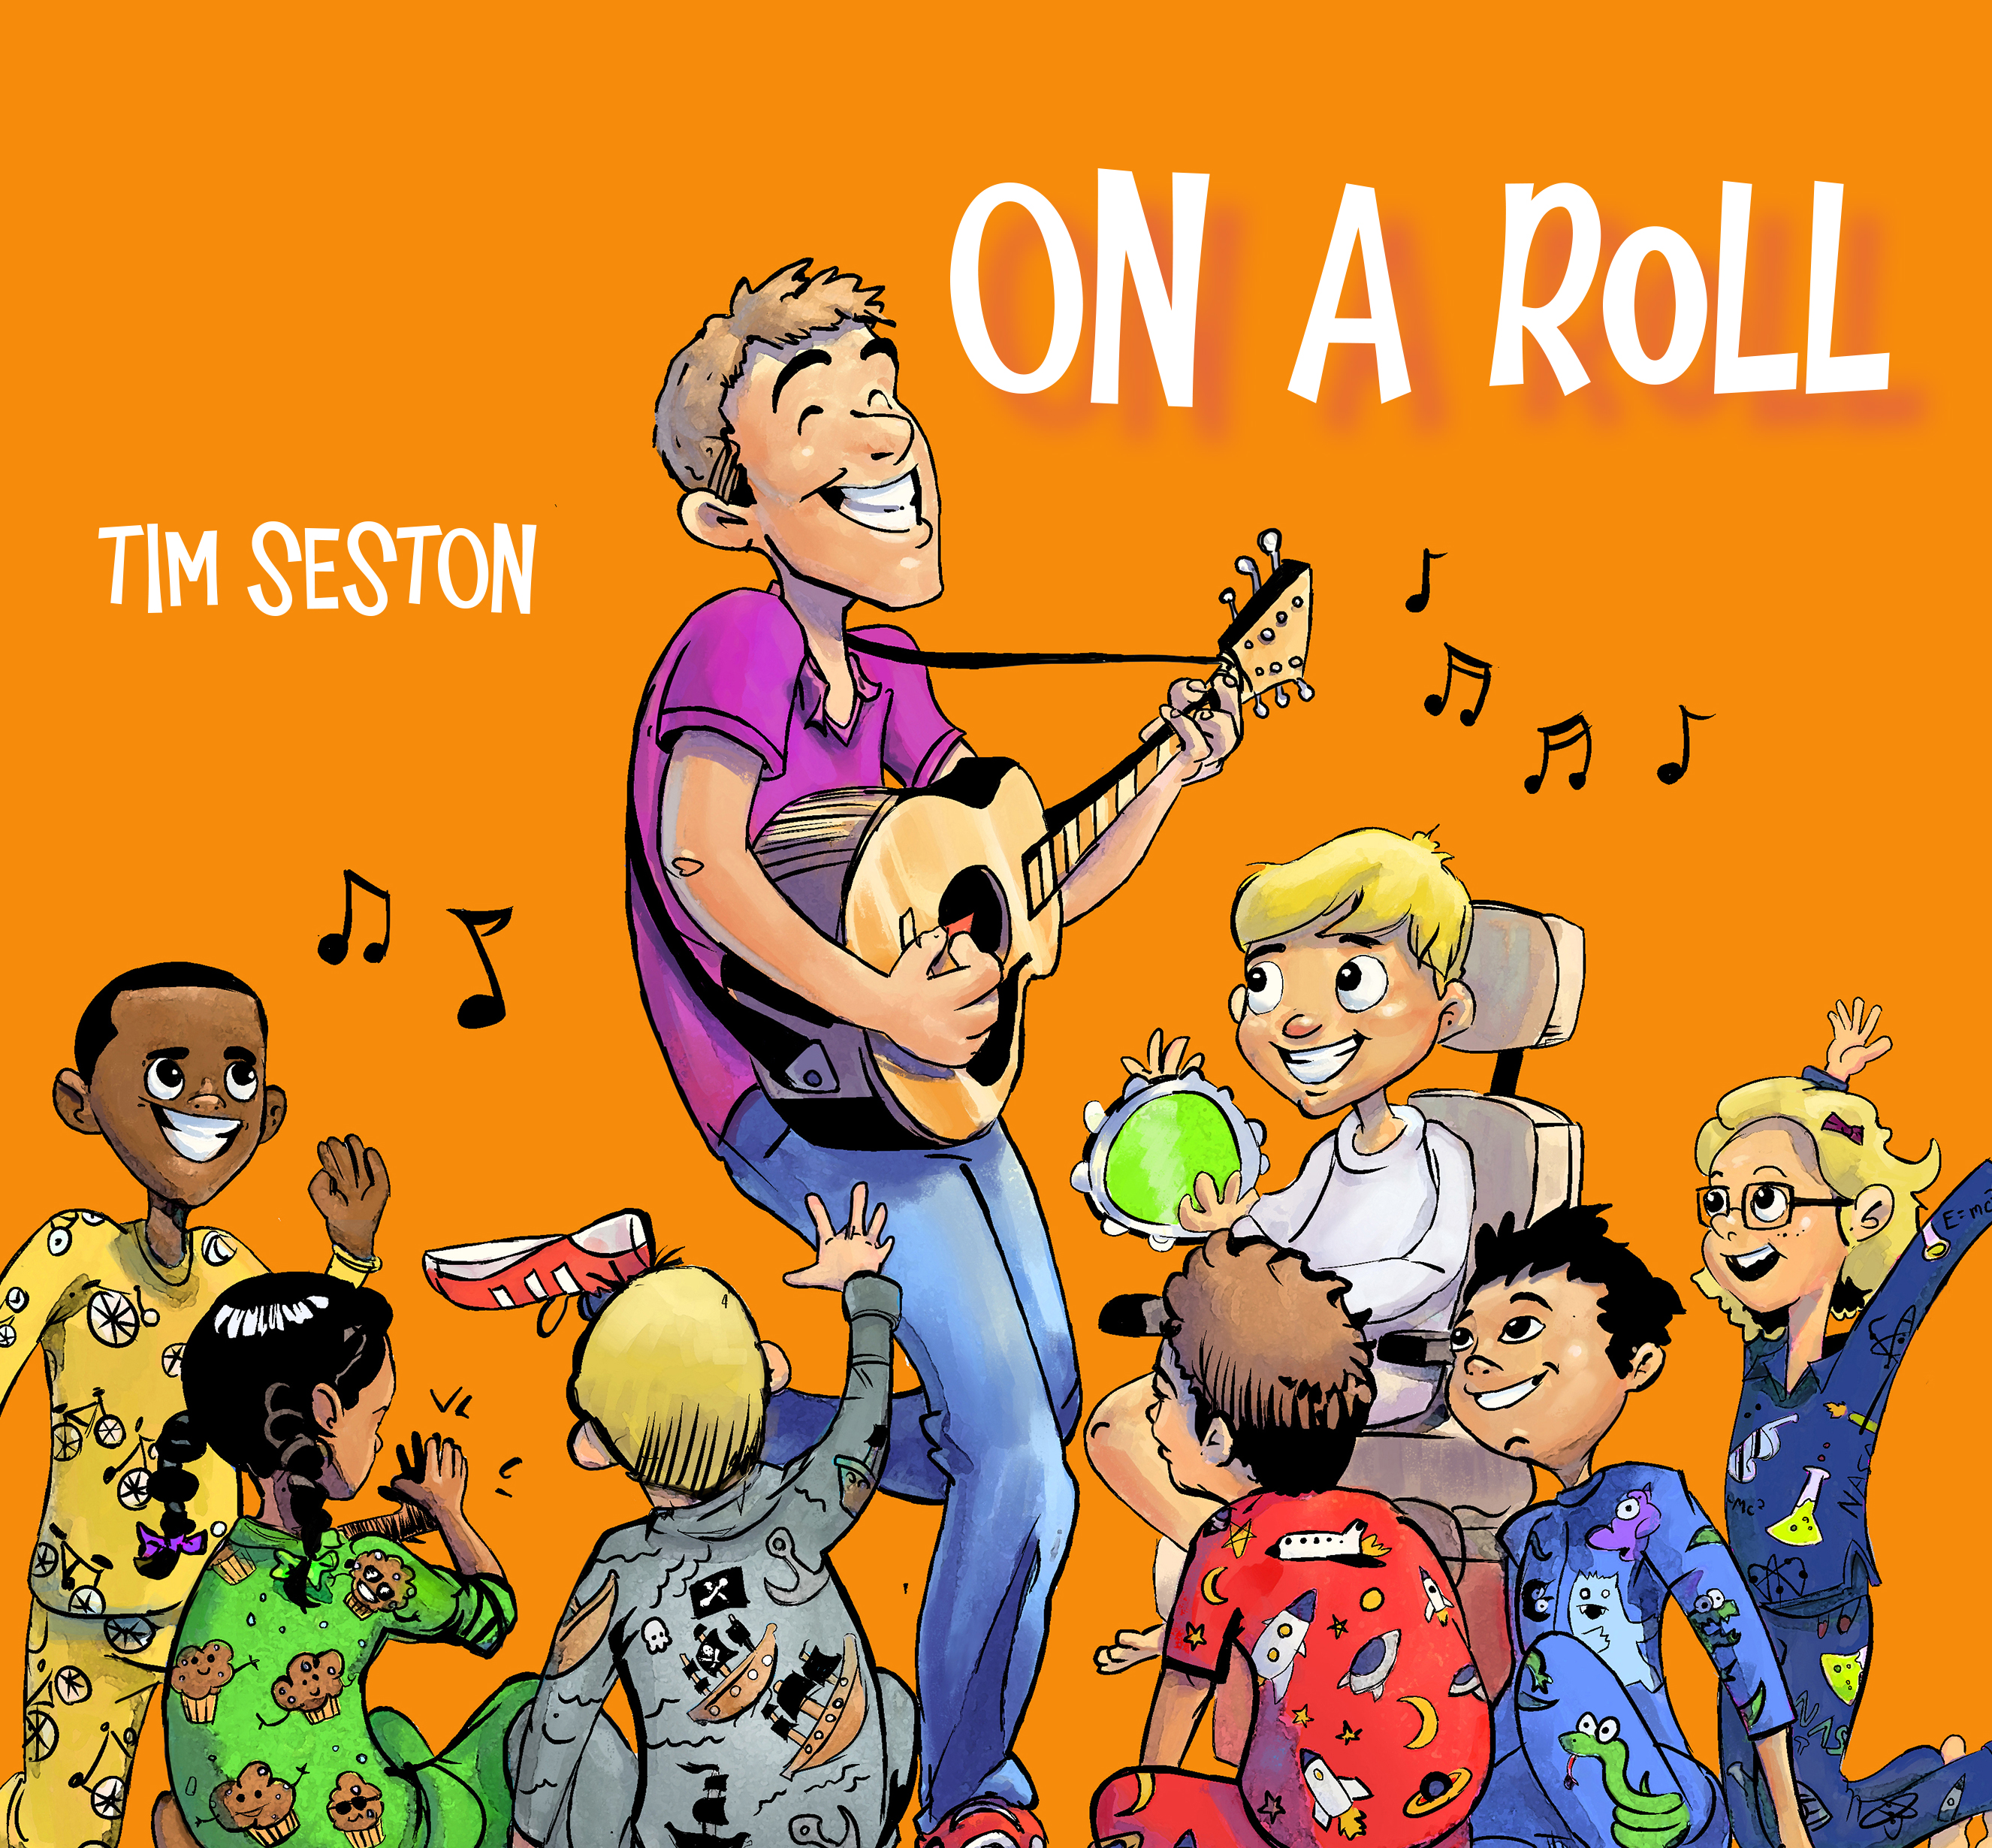 On a Roll by Tim Seston